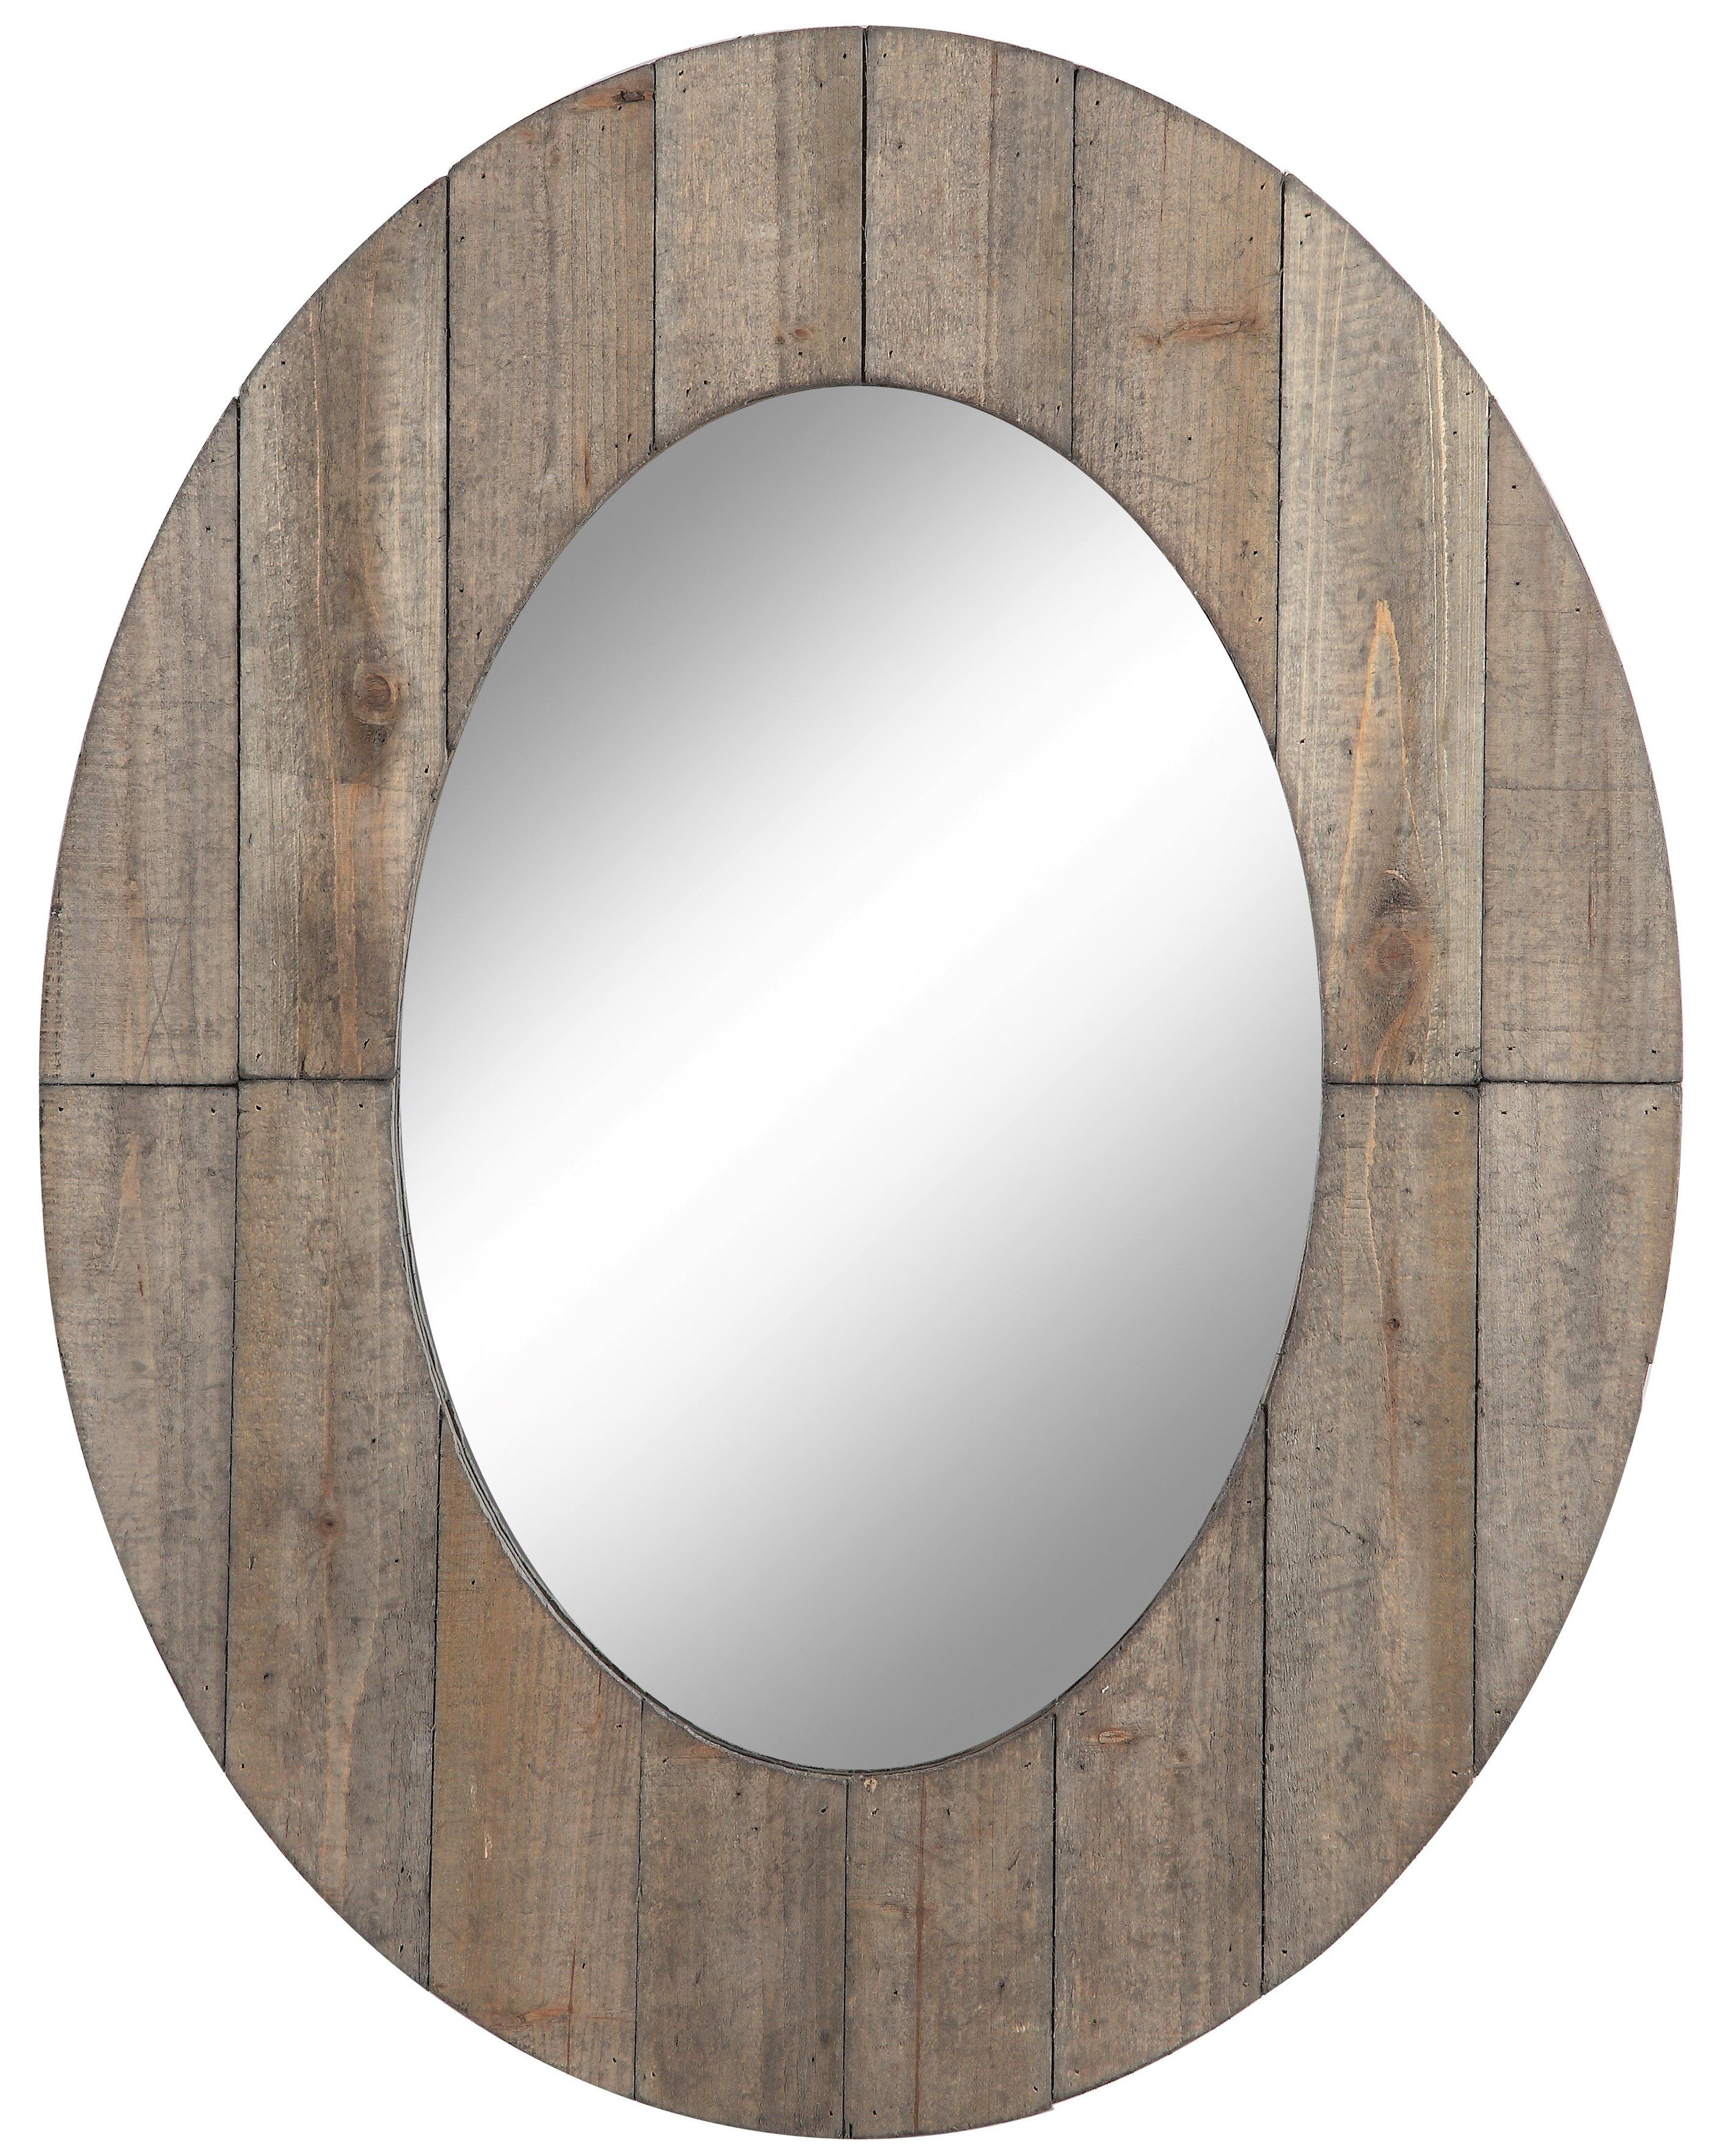 Gracie Oaks Newson Oval Wall Mirror With Pfister Oval Wood Wall Mirrors (Image 5 of 20)